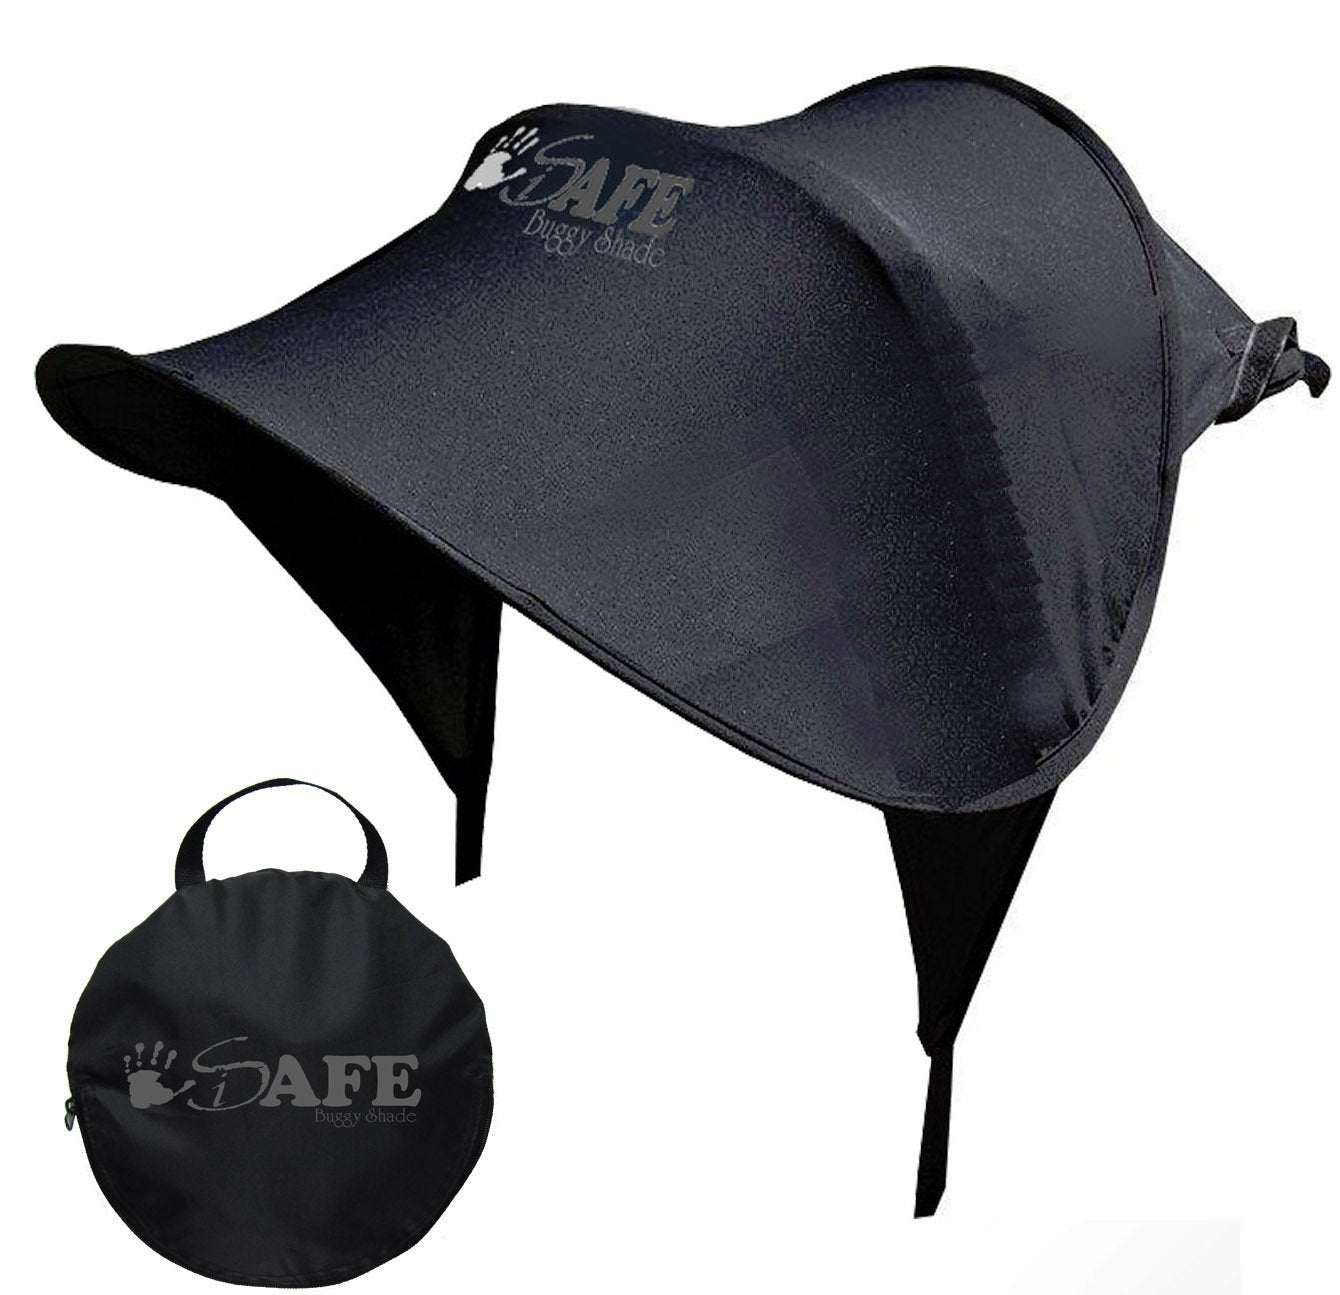 I-Safe Buggy Shade Universal Stroller Sun Shade Maker - Baby Travel UK - 1  sc 1 st  Welcome To Baby Travel LTD Exclusive British Designer And ... & Welcome To Baby Travel LTD Exclusive British Designer And ...